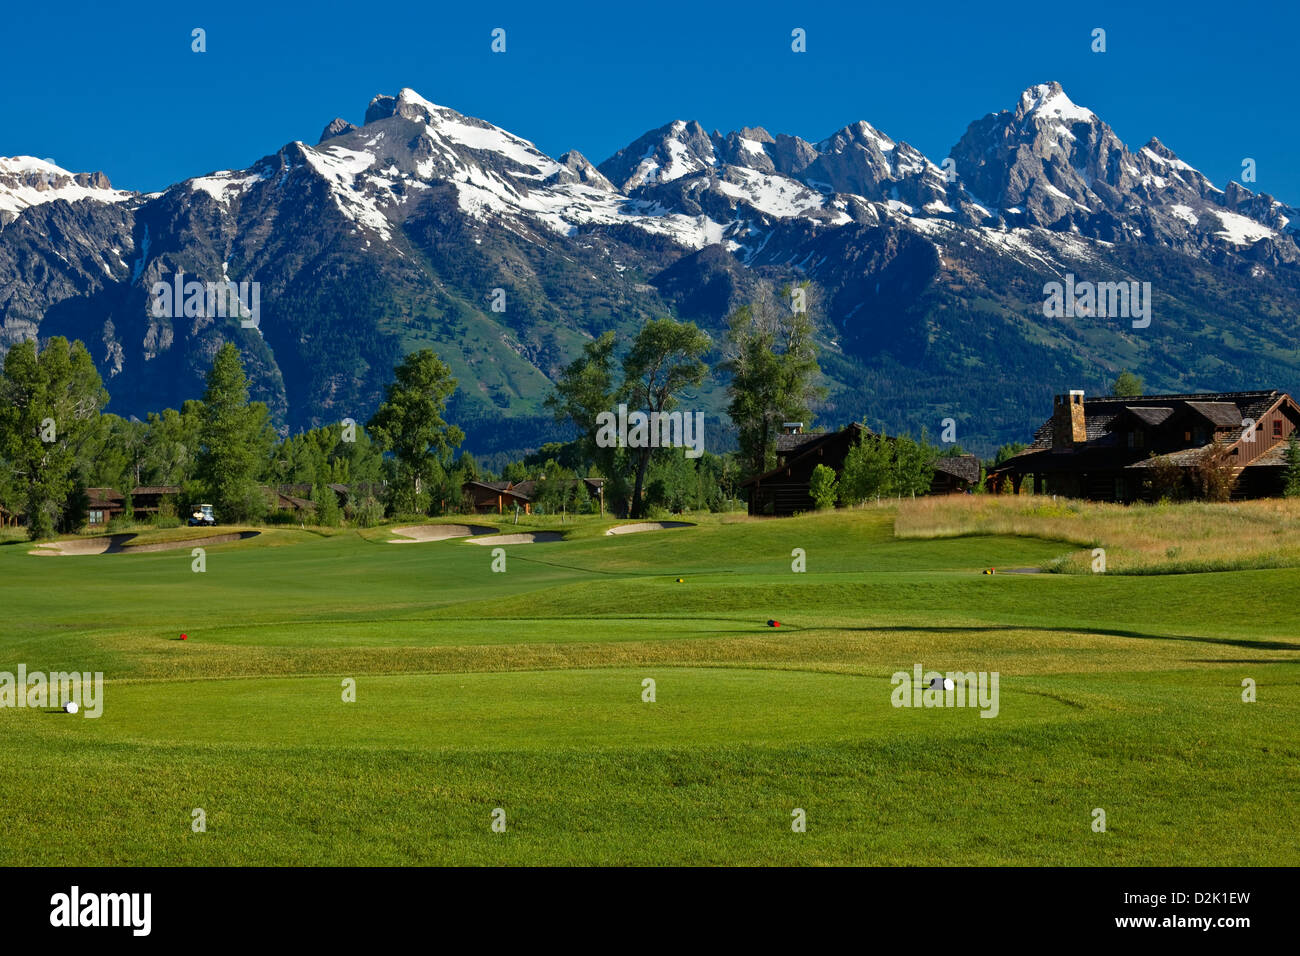 WY00226-00...WYOMING - i Teton Mountain Range in background di Jackson Hole Golf e Tennis Club. Immagini Stock